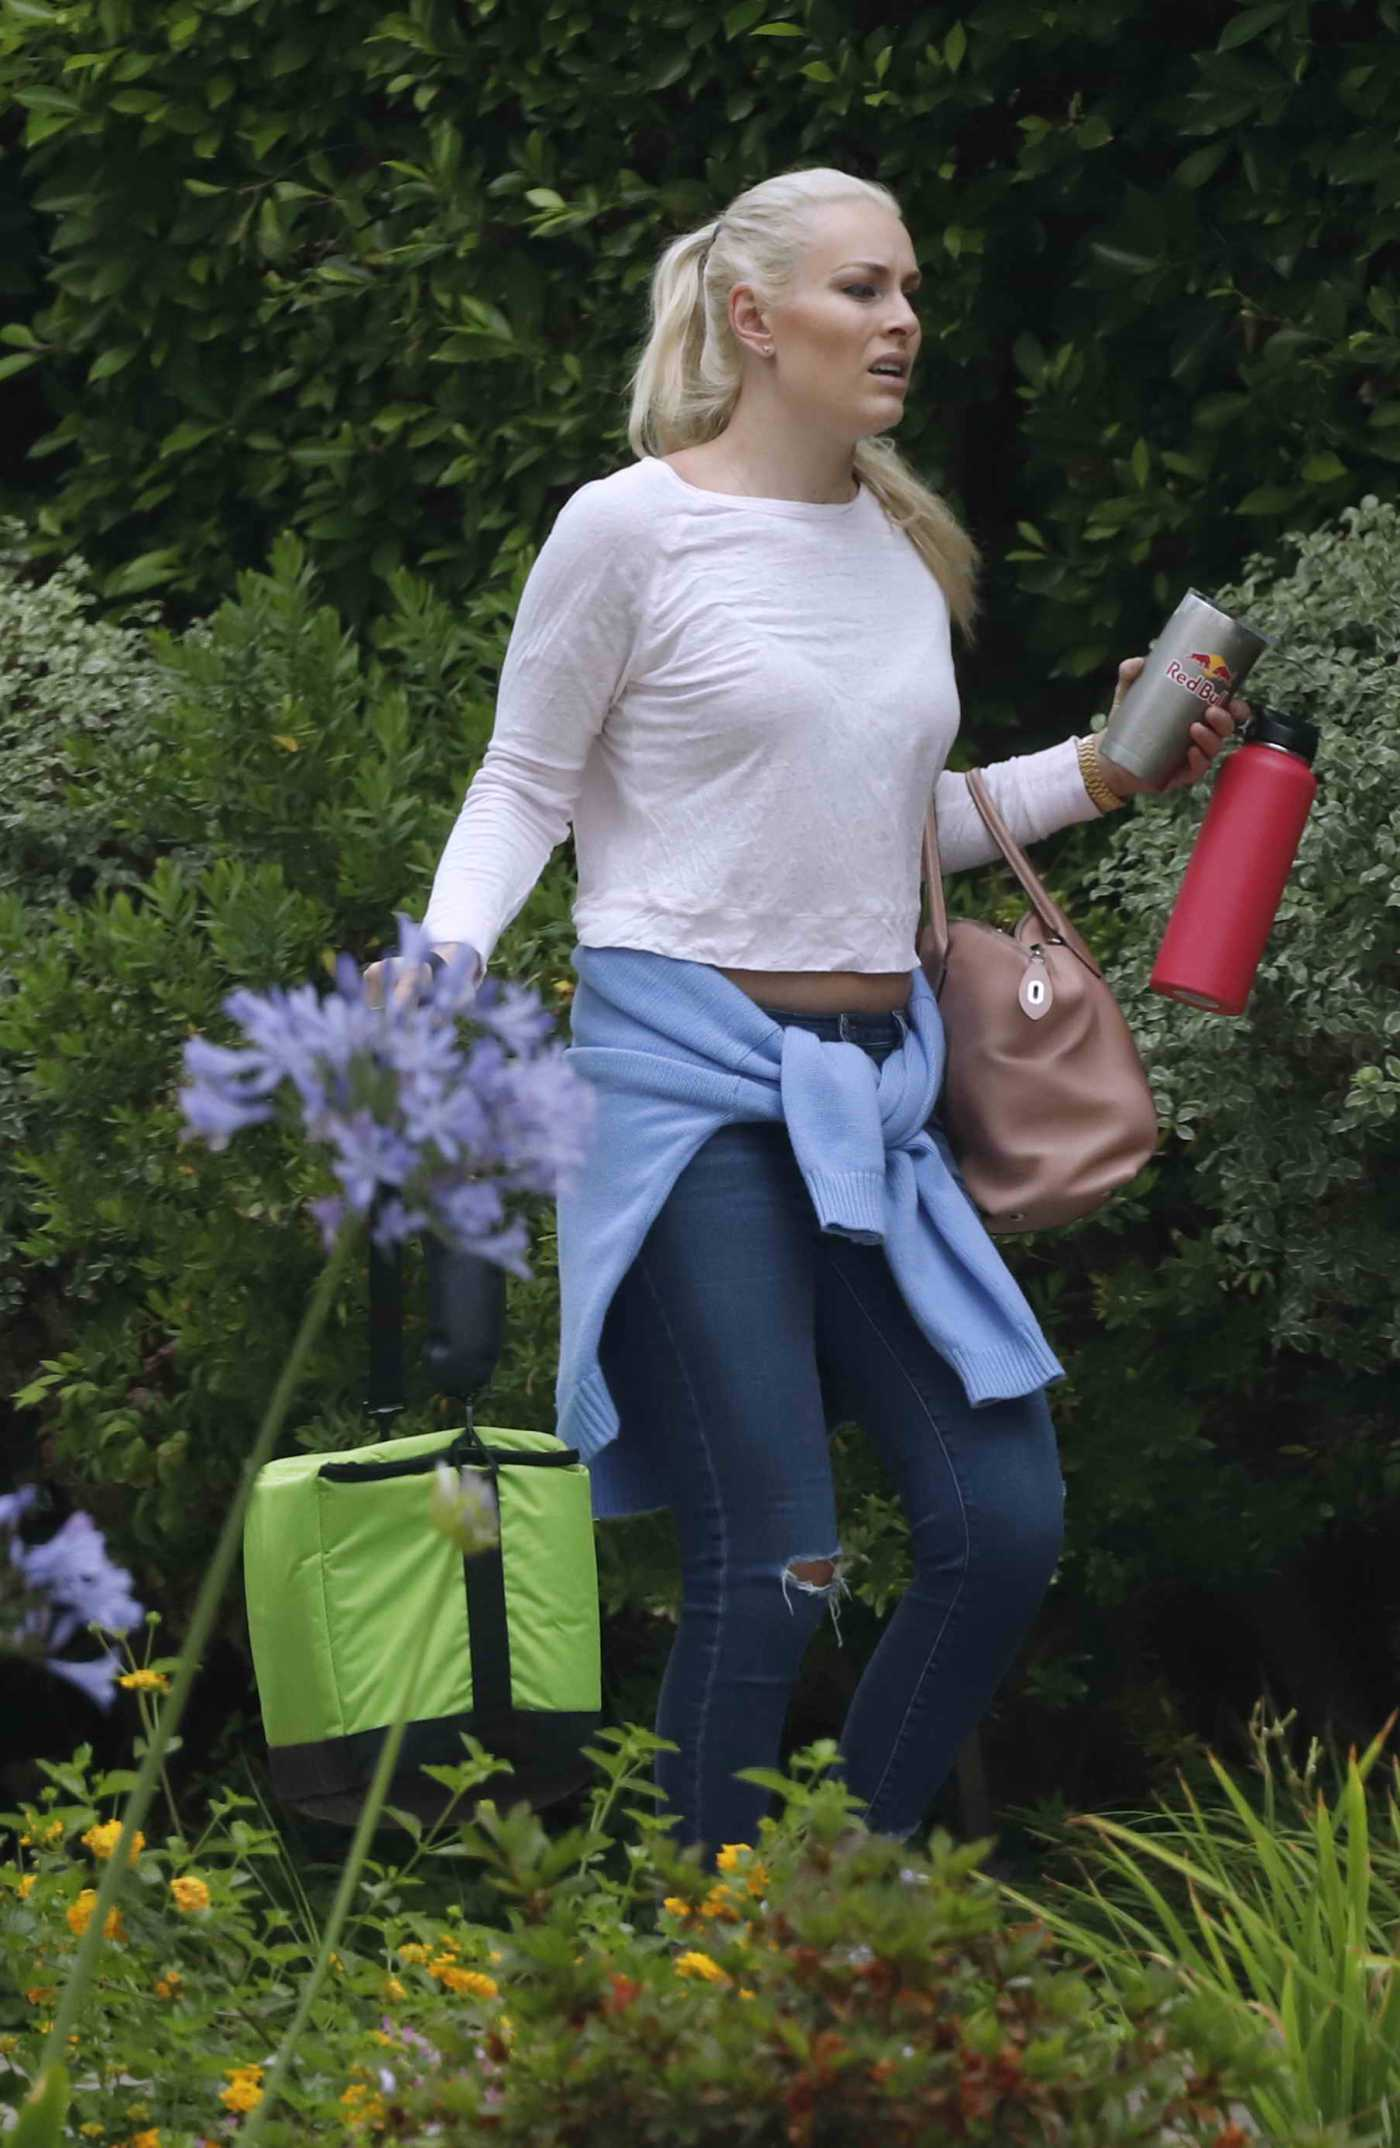 Lindsey Vonn in a White Long Sleeves T-Shirt Was Seen Out in Los Angeles 06/17/2019